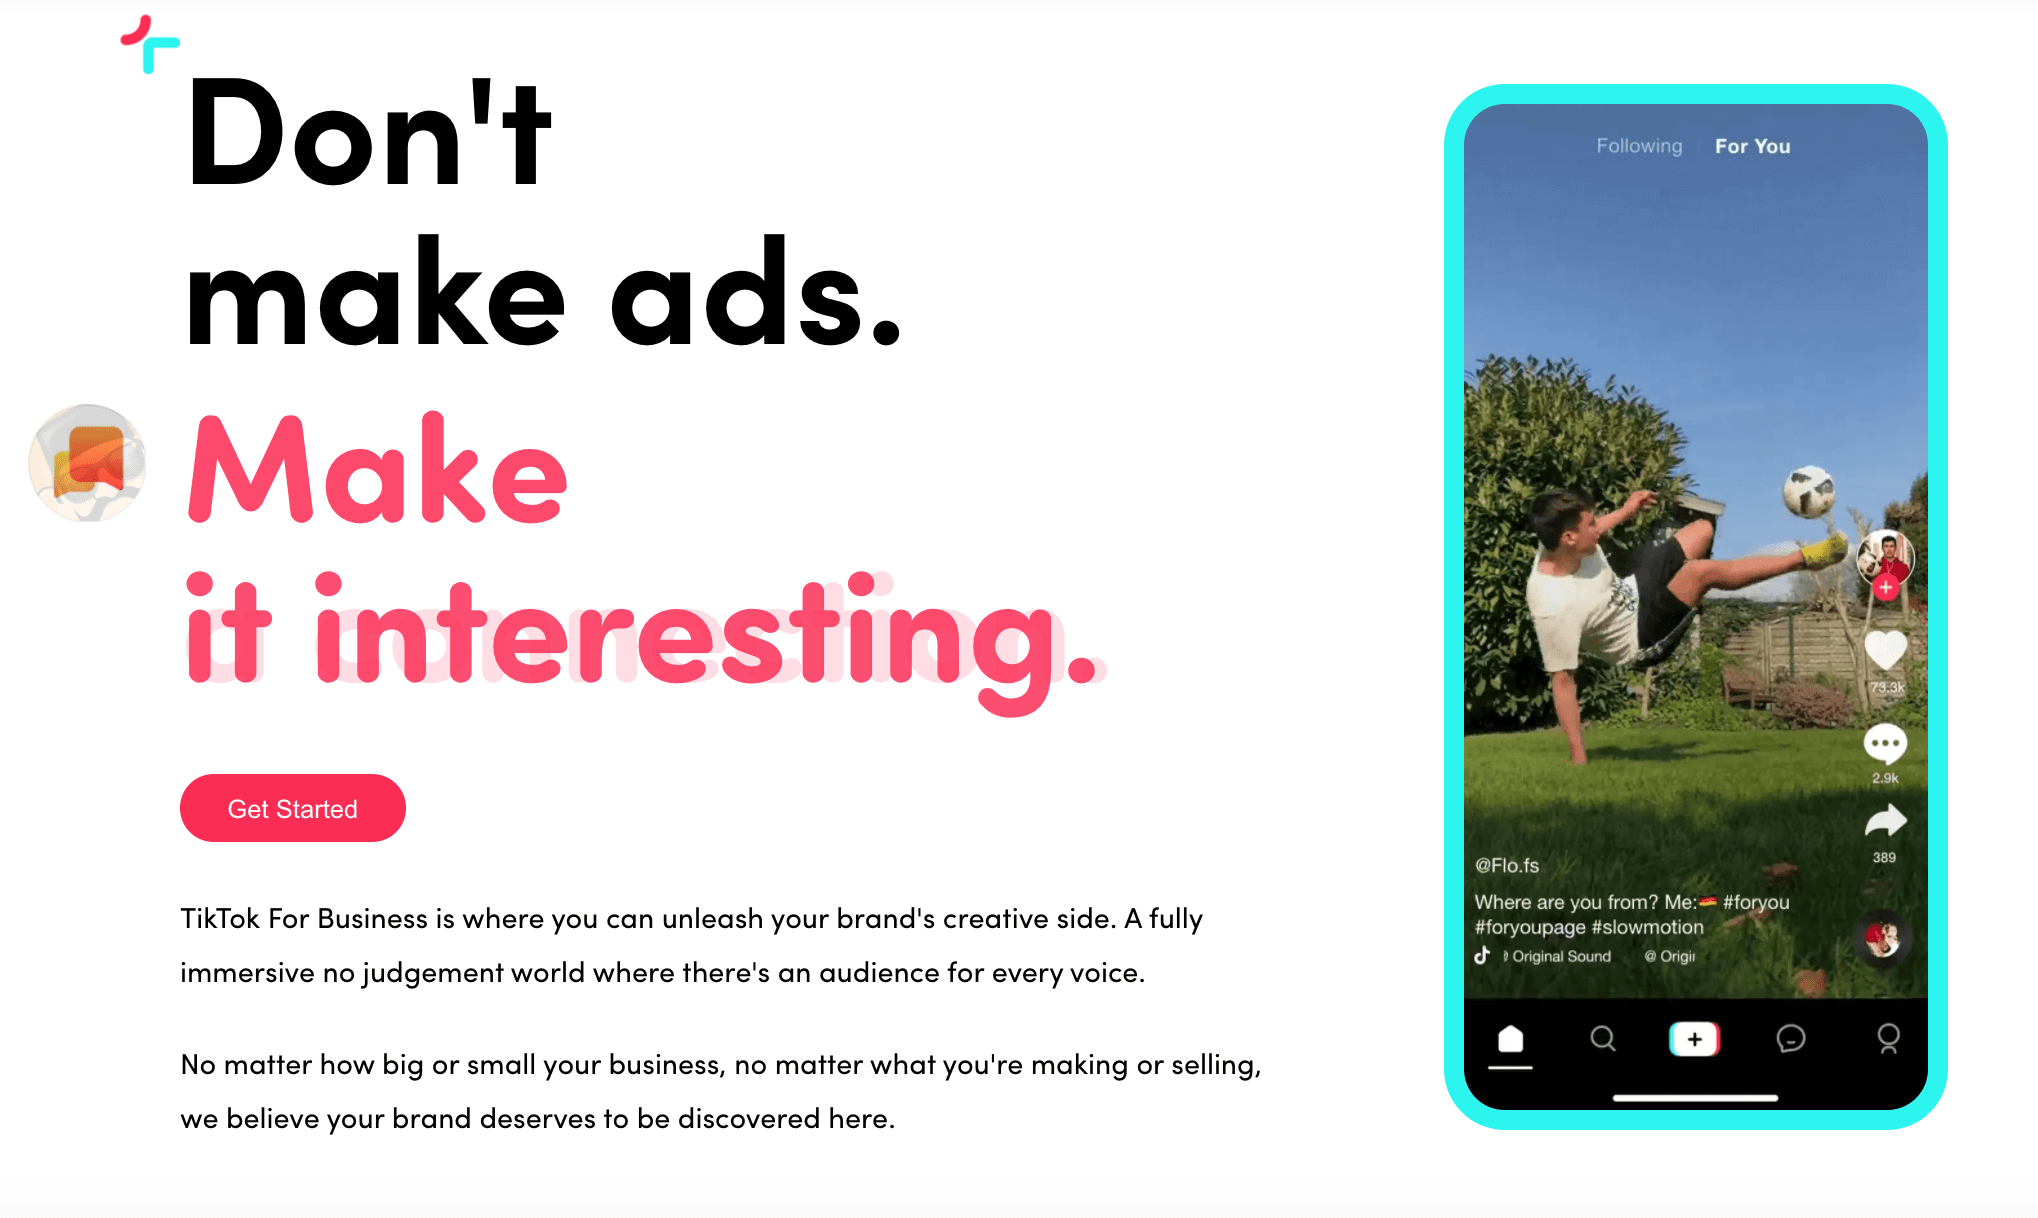 41 Tiktok Video Ideas For Small Businesses Boosted Business Boost Marketing Strategy Social Media Social Media Marketing Business